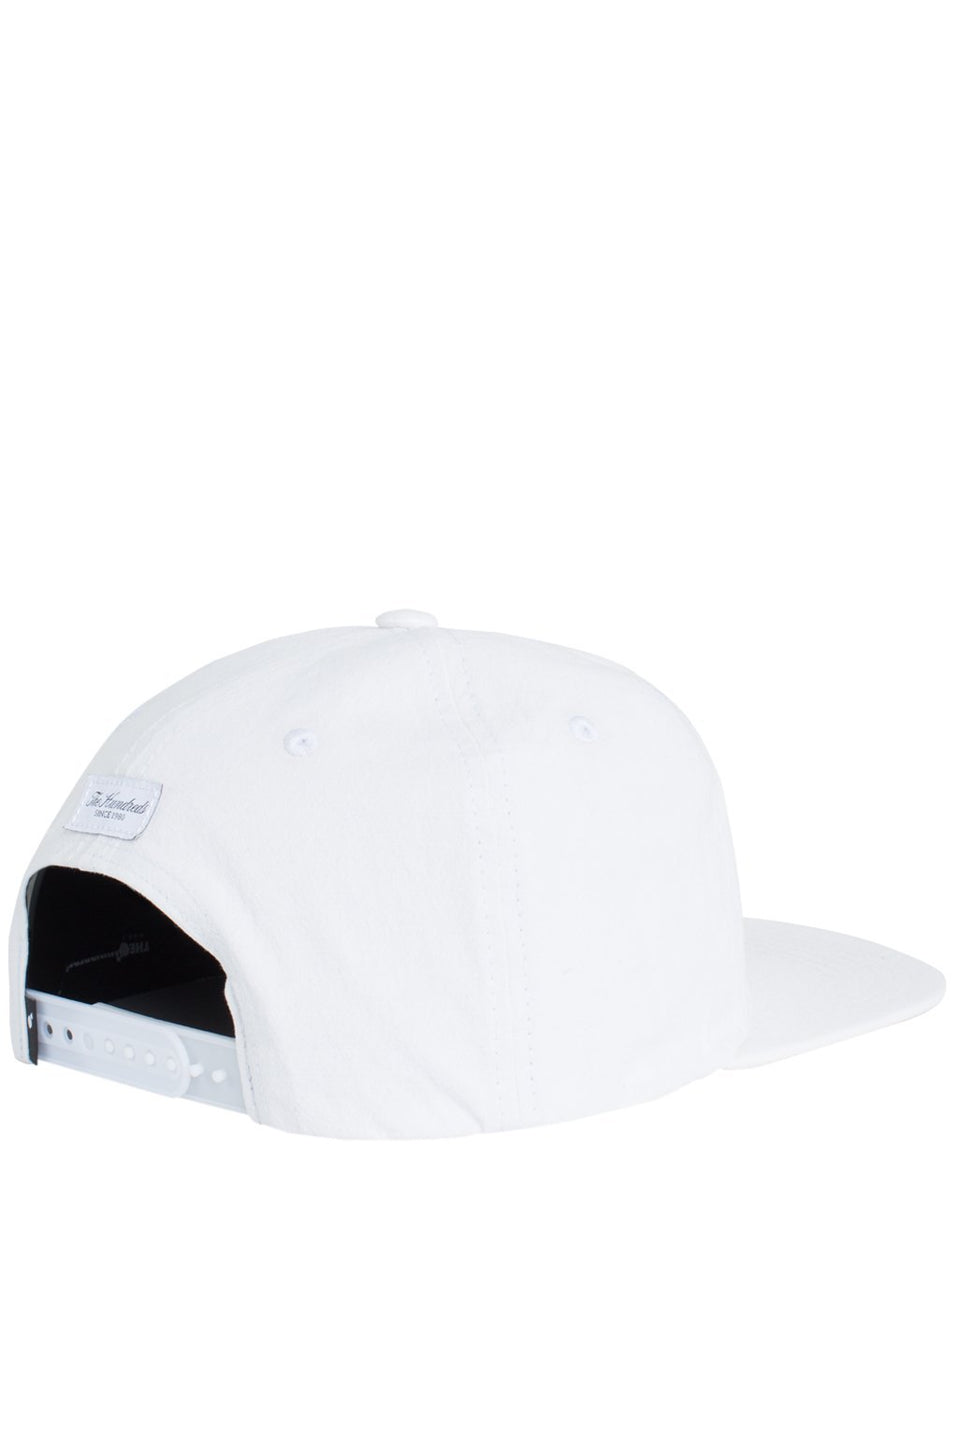 Evers Snapback-HEADWEAR-The Hundreds UK